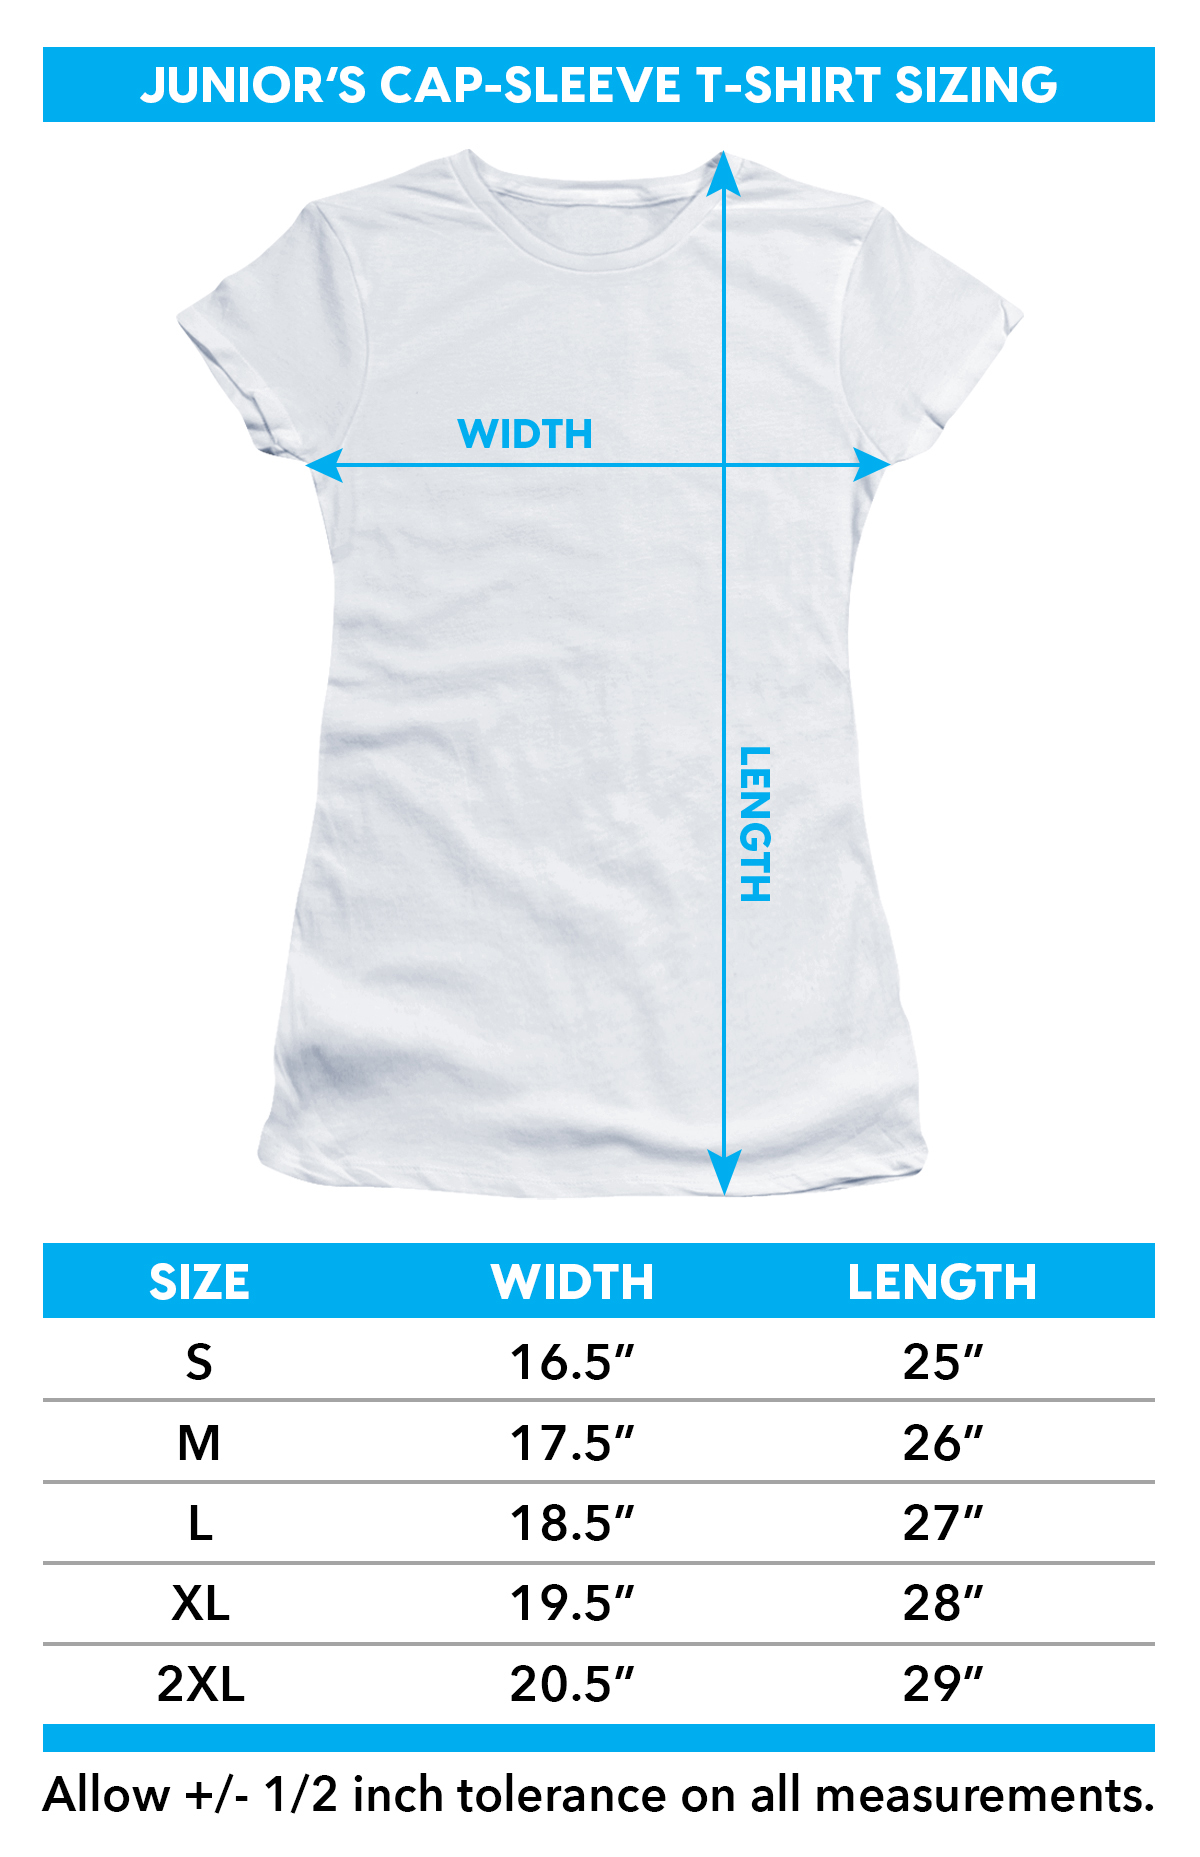 Girls sizing chart for Twin Peaks Girls T-Shirt - Population 51,201 TRV-SHO575-JS